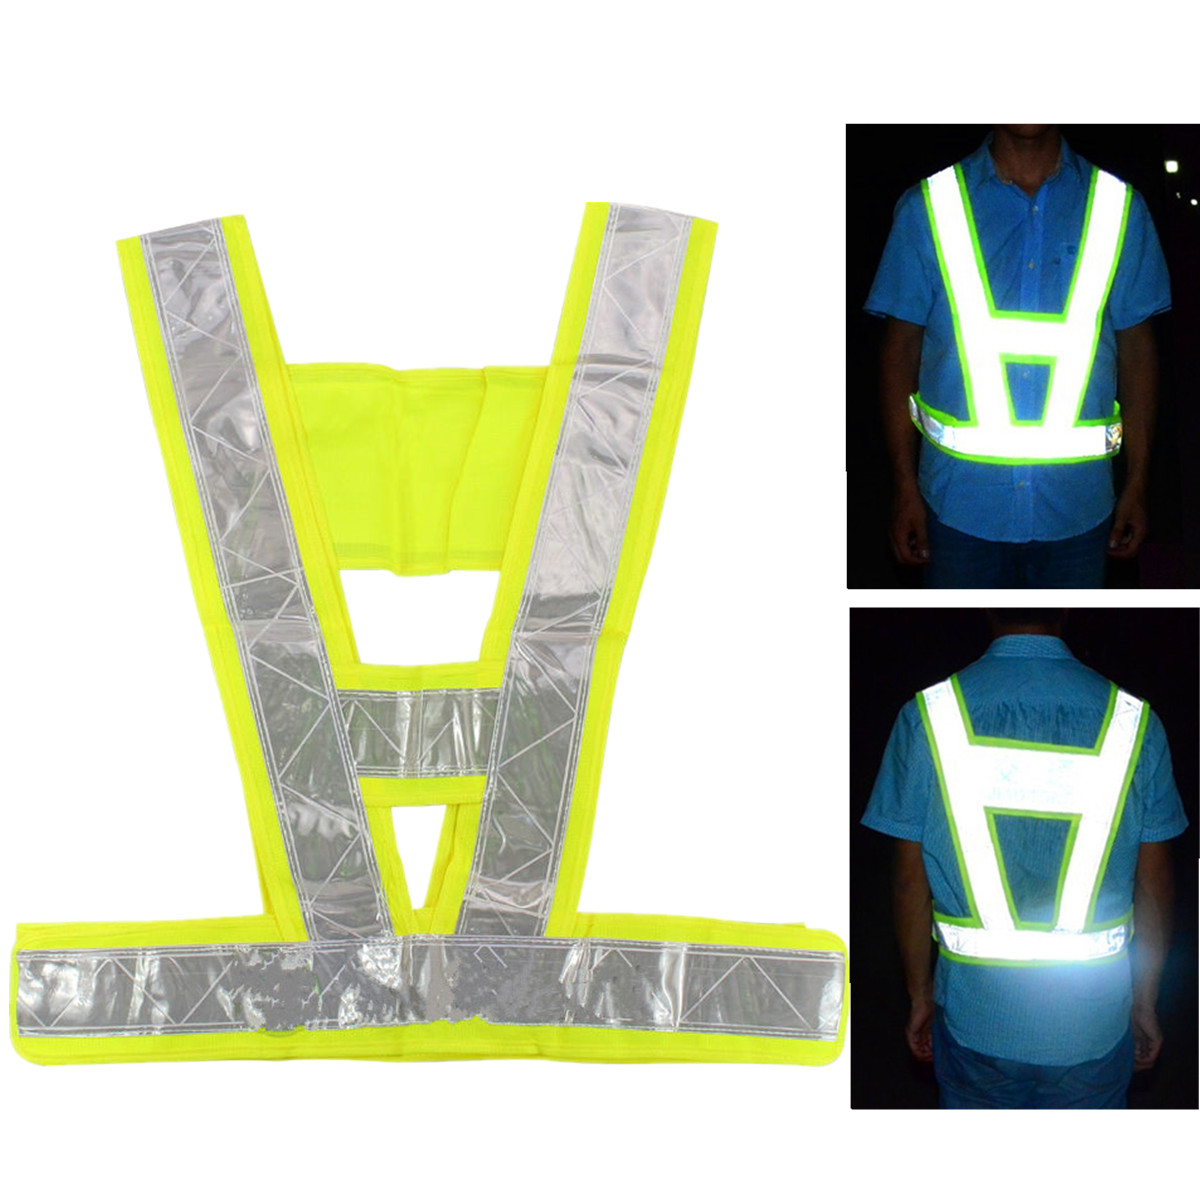 Reflective Safety Vest Jacket Traffic Security Vest High Safety Visibility Reflective Stripe Gear Outdoor Cycling Running Vest